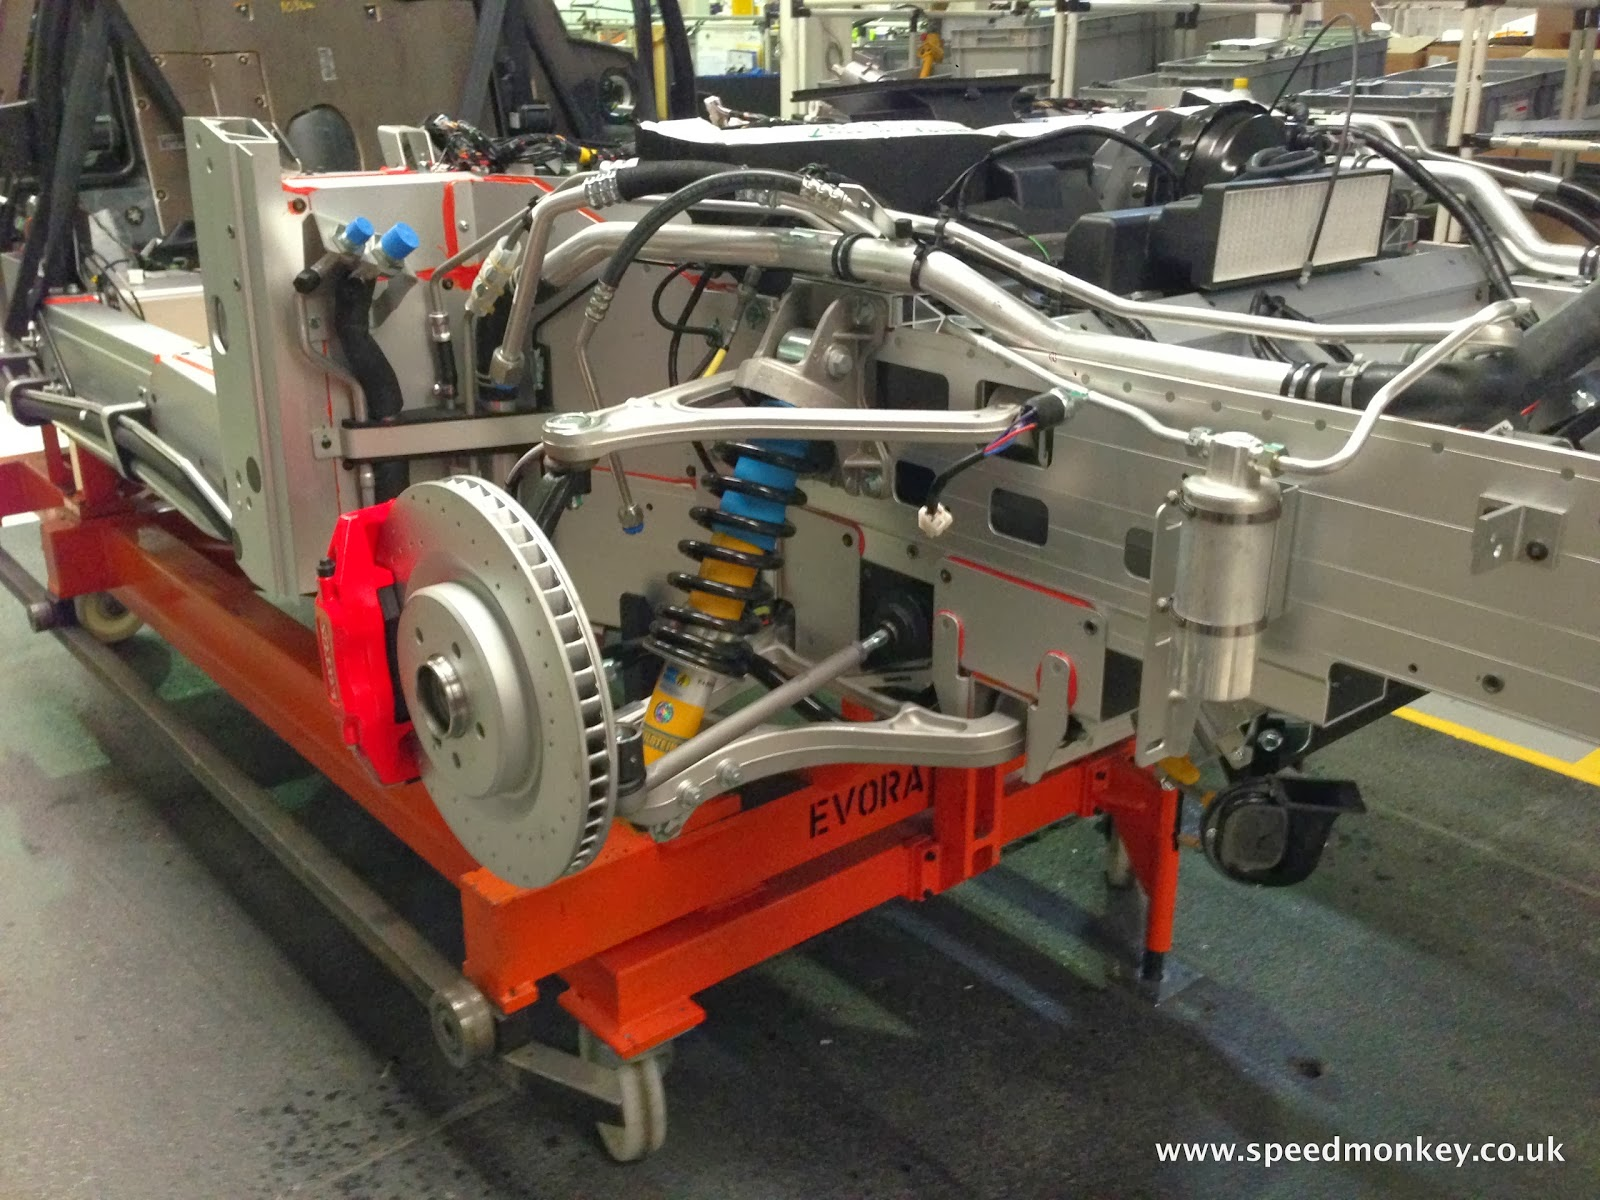 Speedmonkey has volkswagen backed the wrong technology for Chassis aluminium